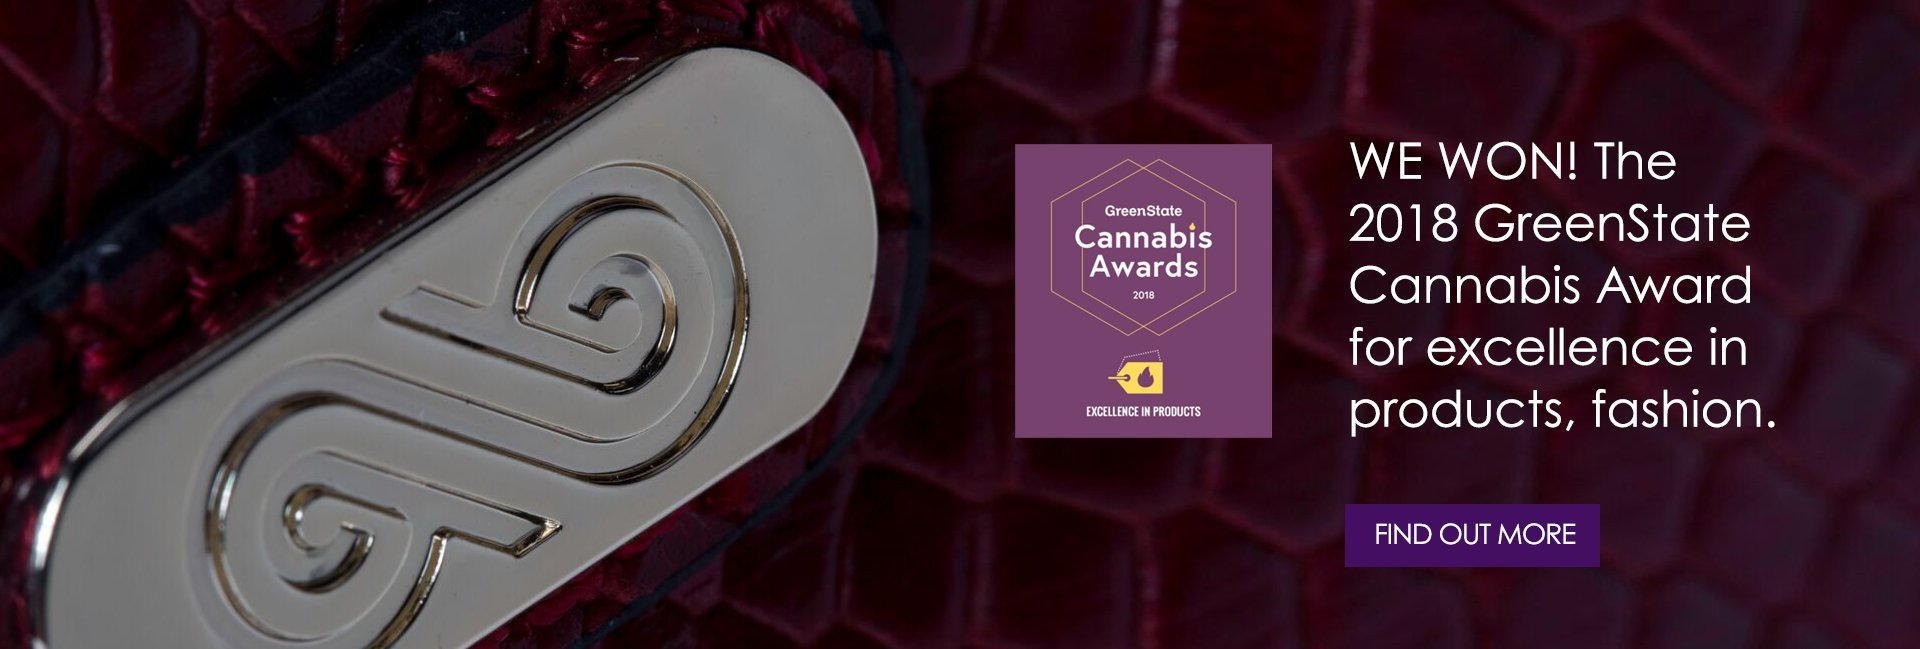 AnnaBis Odor Proof Bag- a smell proof purse for the